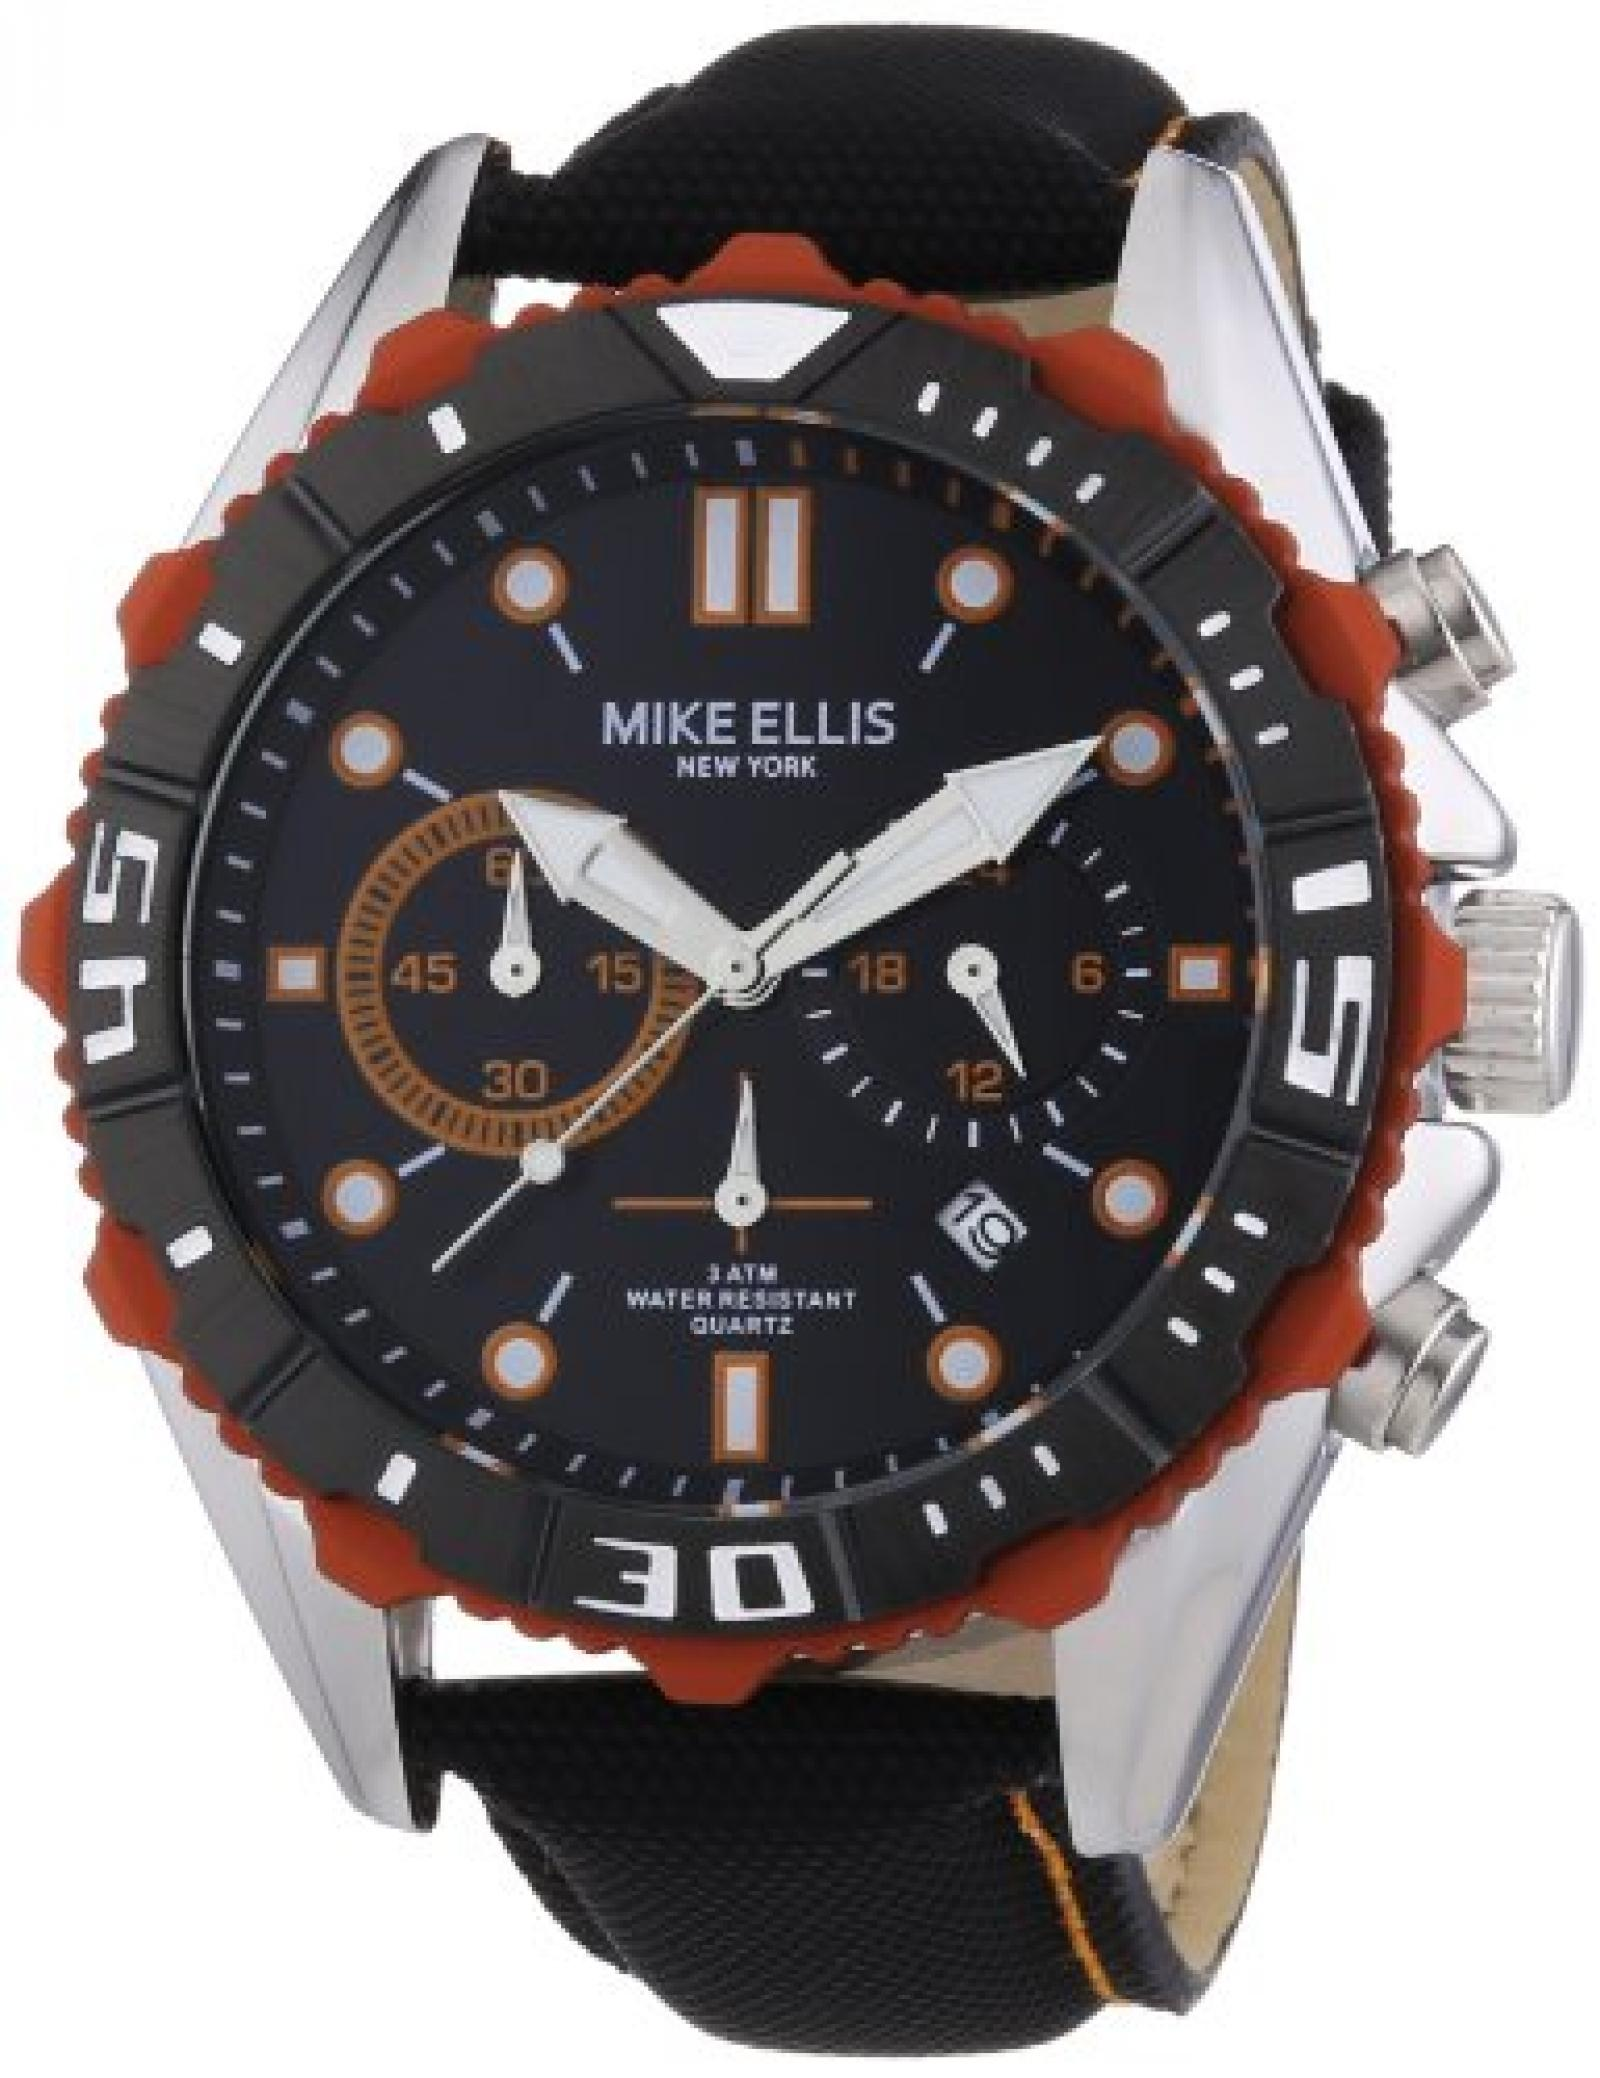 Mike Ellis New York Herren-Armbanduhr XL Chronograph Quarz 17988/2